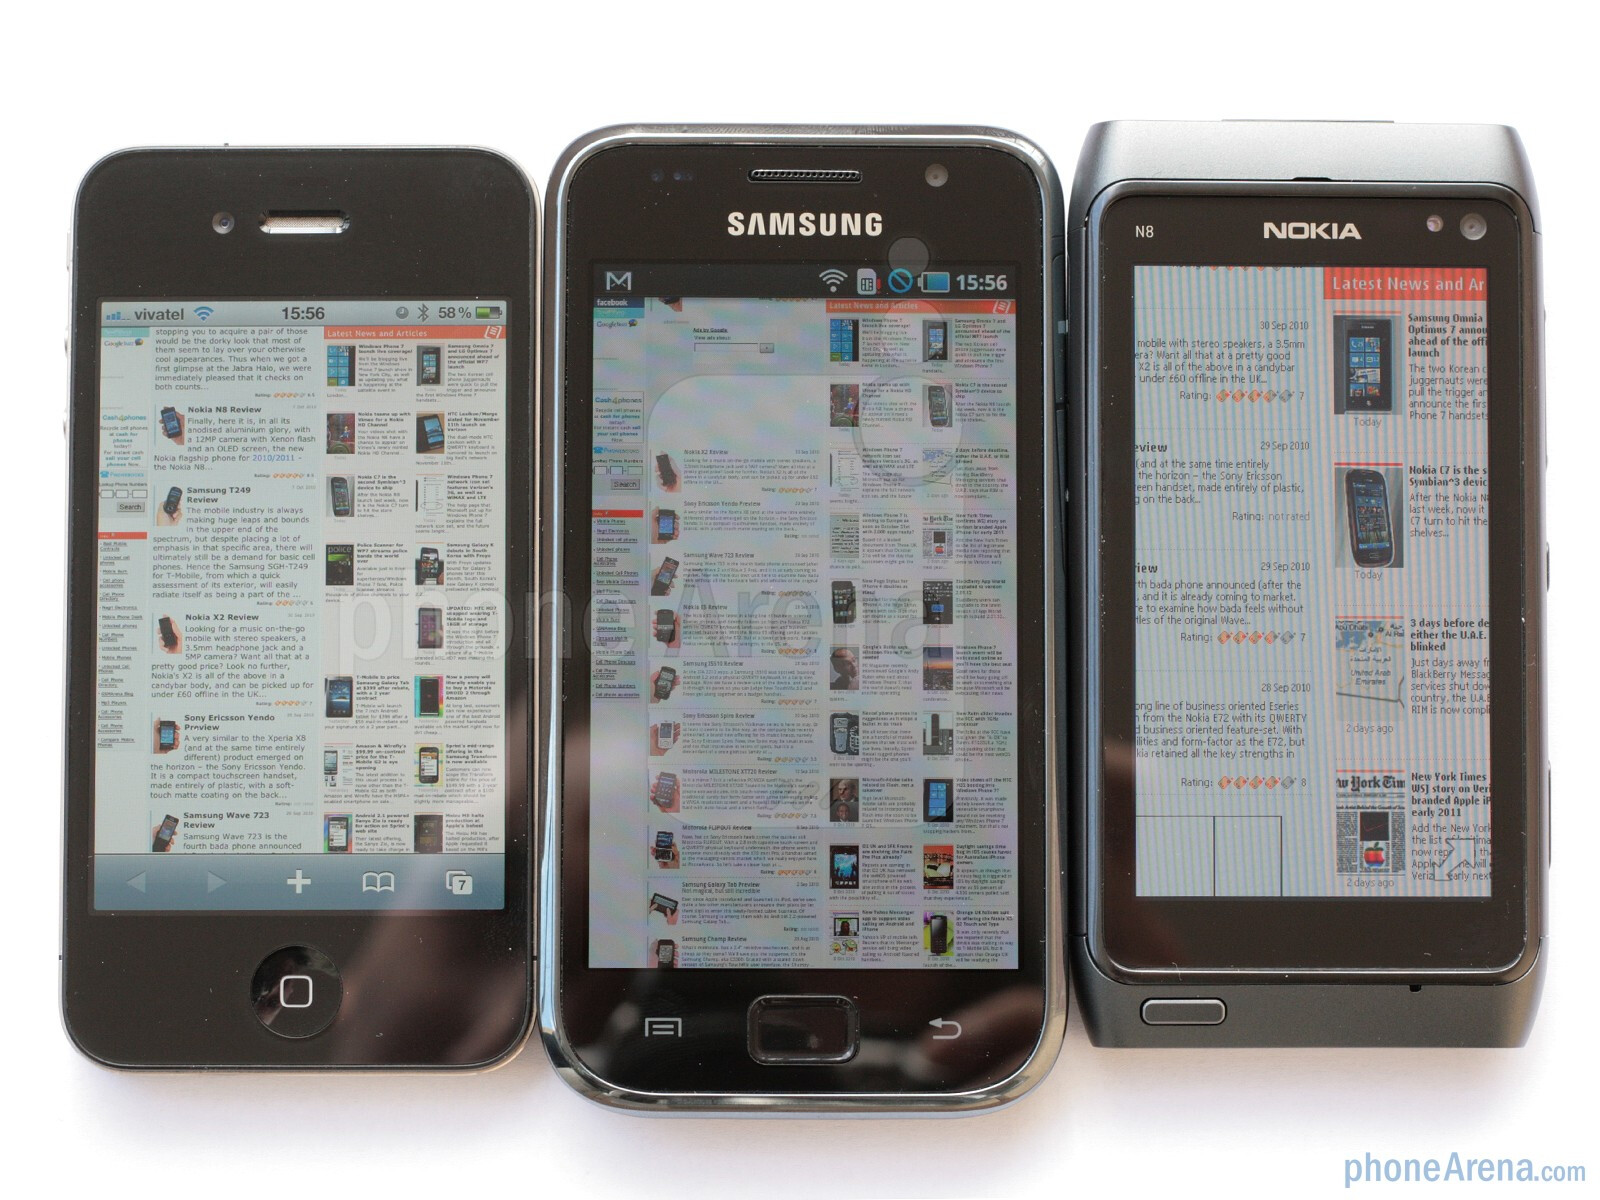 77c7992f6bffaf From left to right - Apple iPhone 4, Samsung Galaxy S, Nokia N8 -